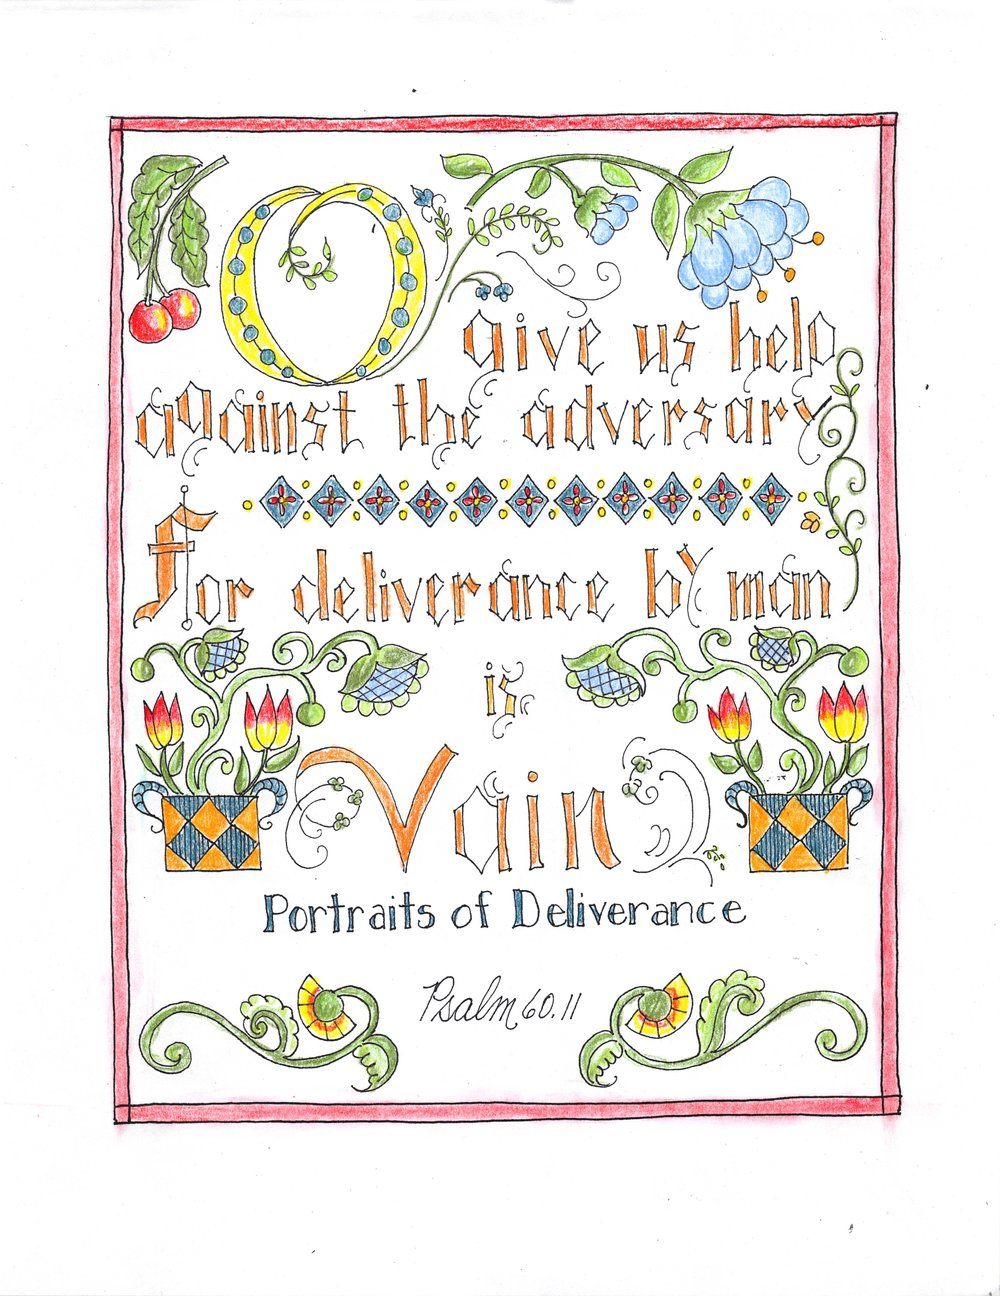 Psalm 60.11 Cover - colored.jpg